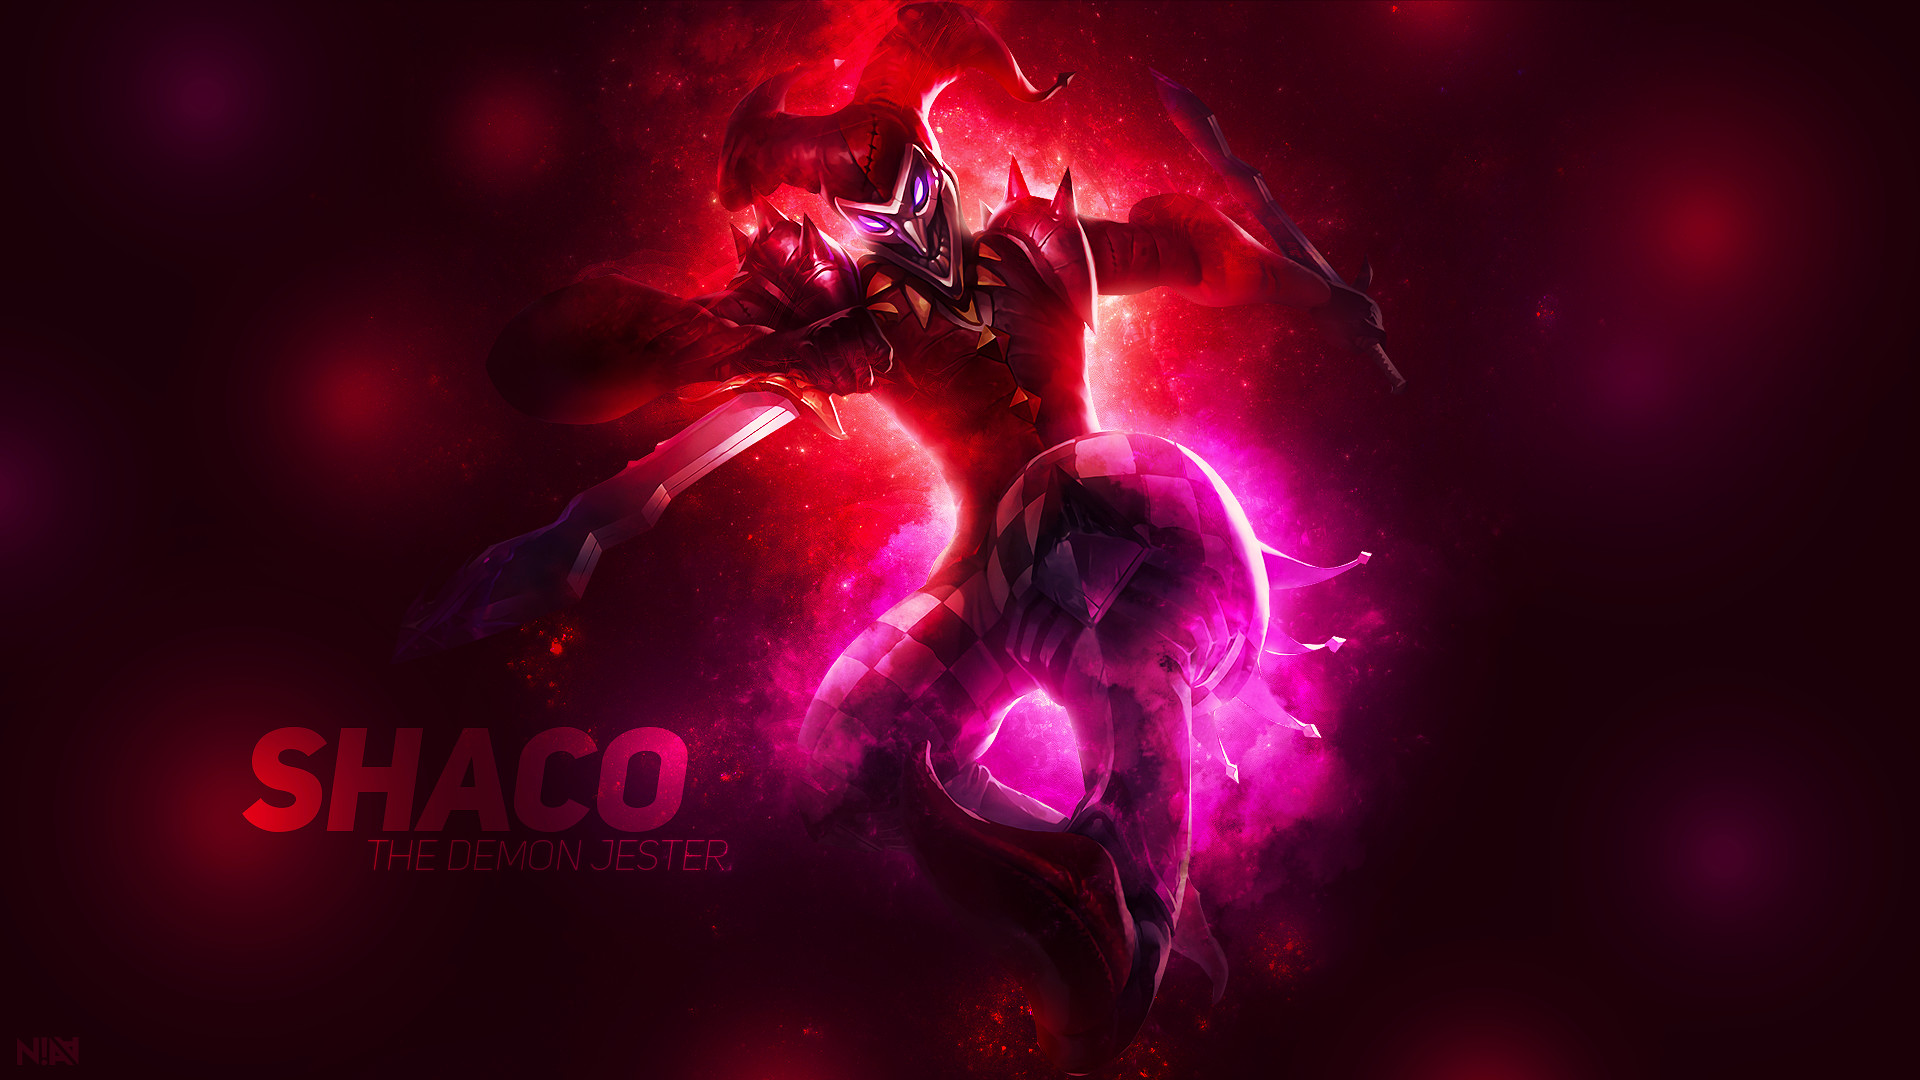 … Shaco The Demon Jester – Wallpaper by AliceeMad